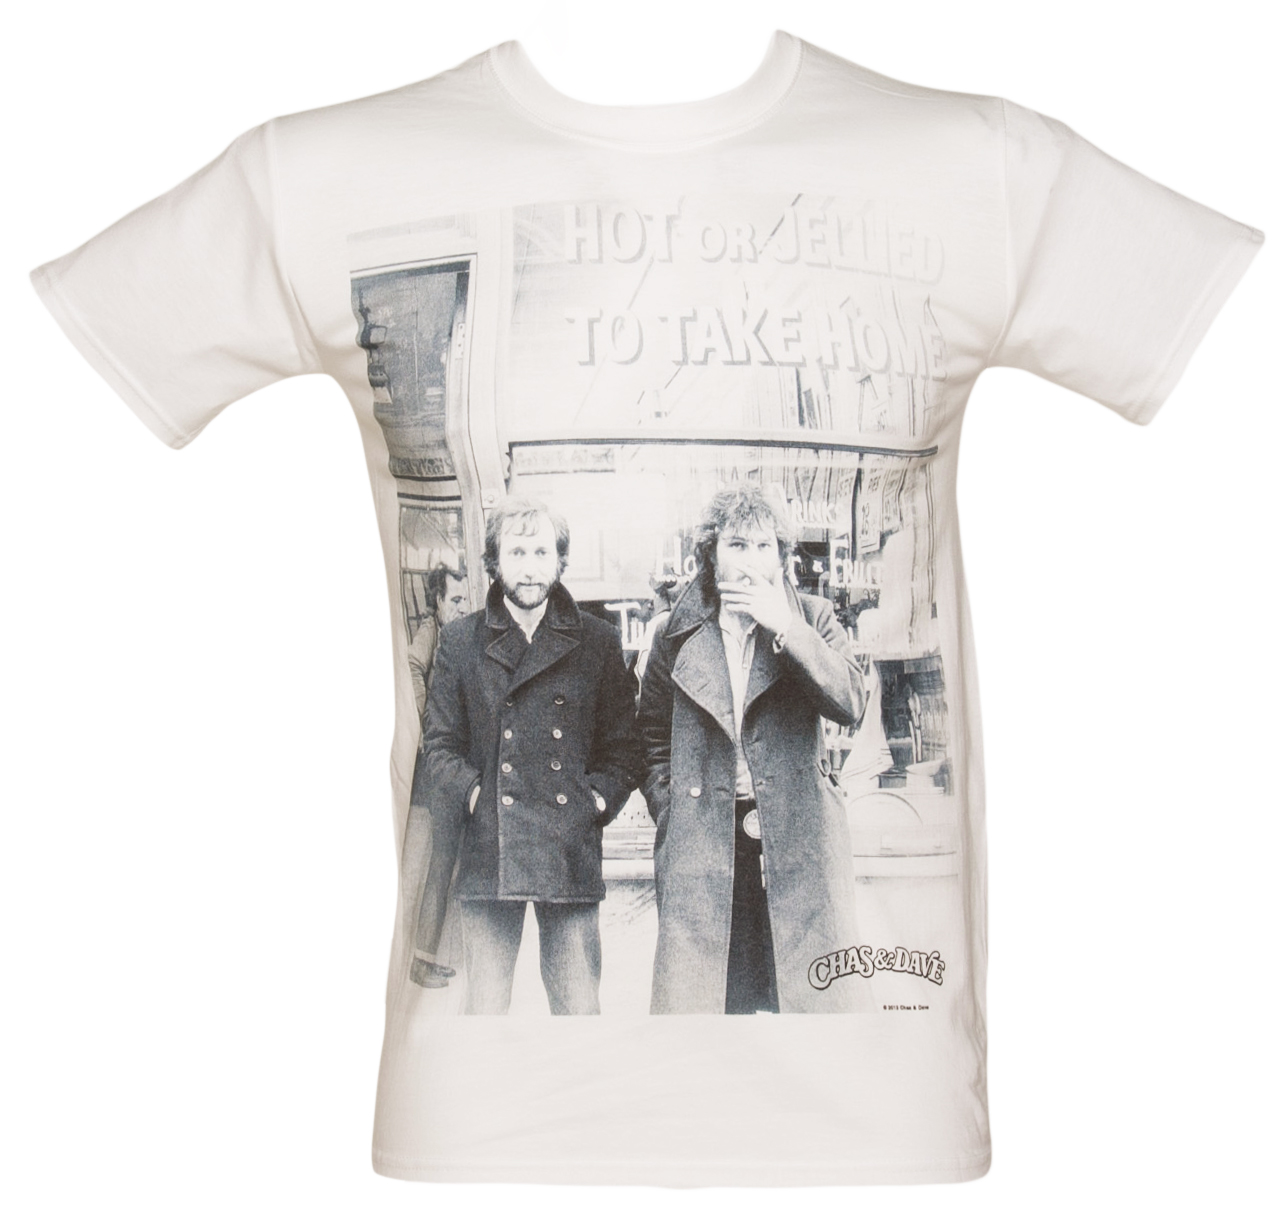 Mens Chas and Dave Hot Or Jellied T-Shirt product image